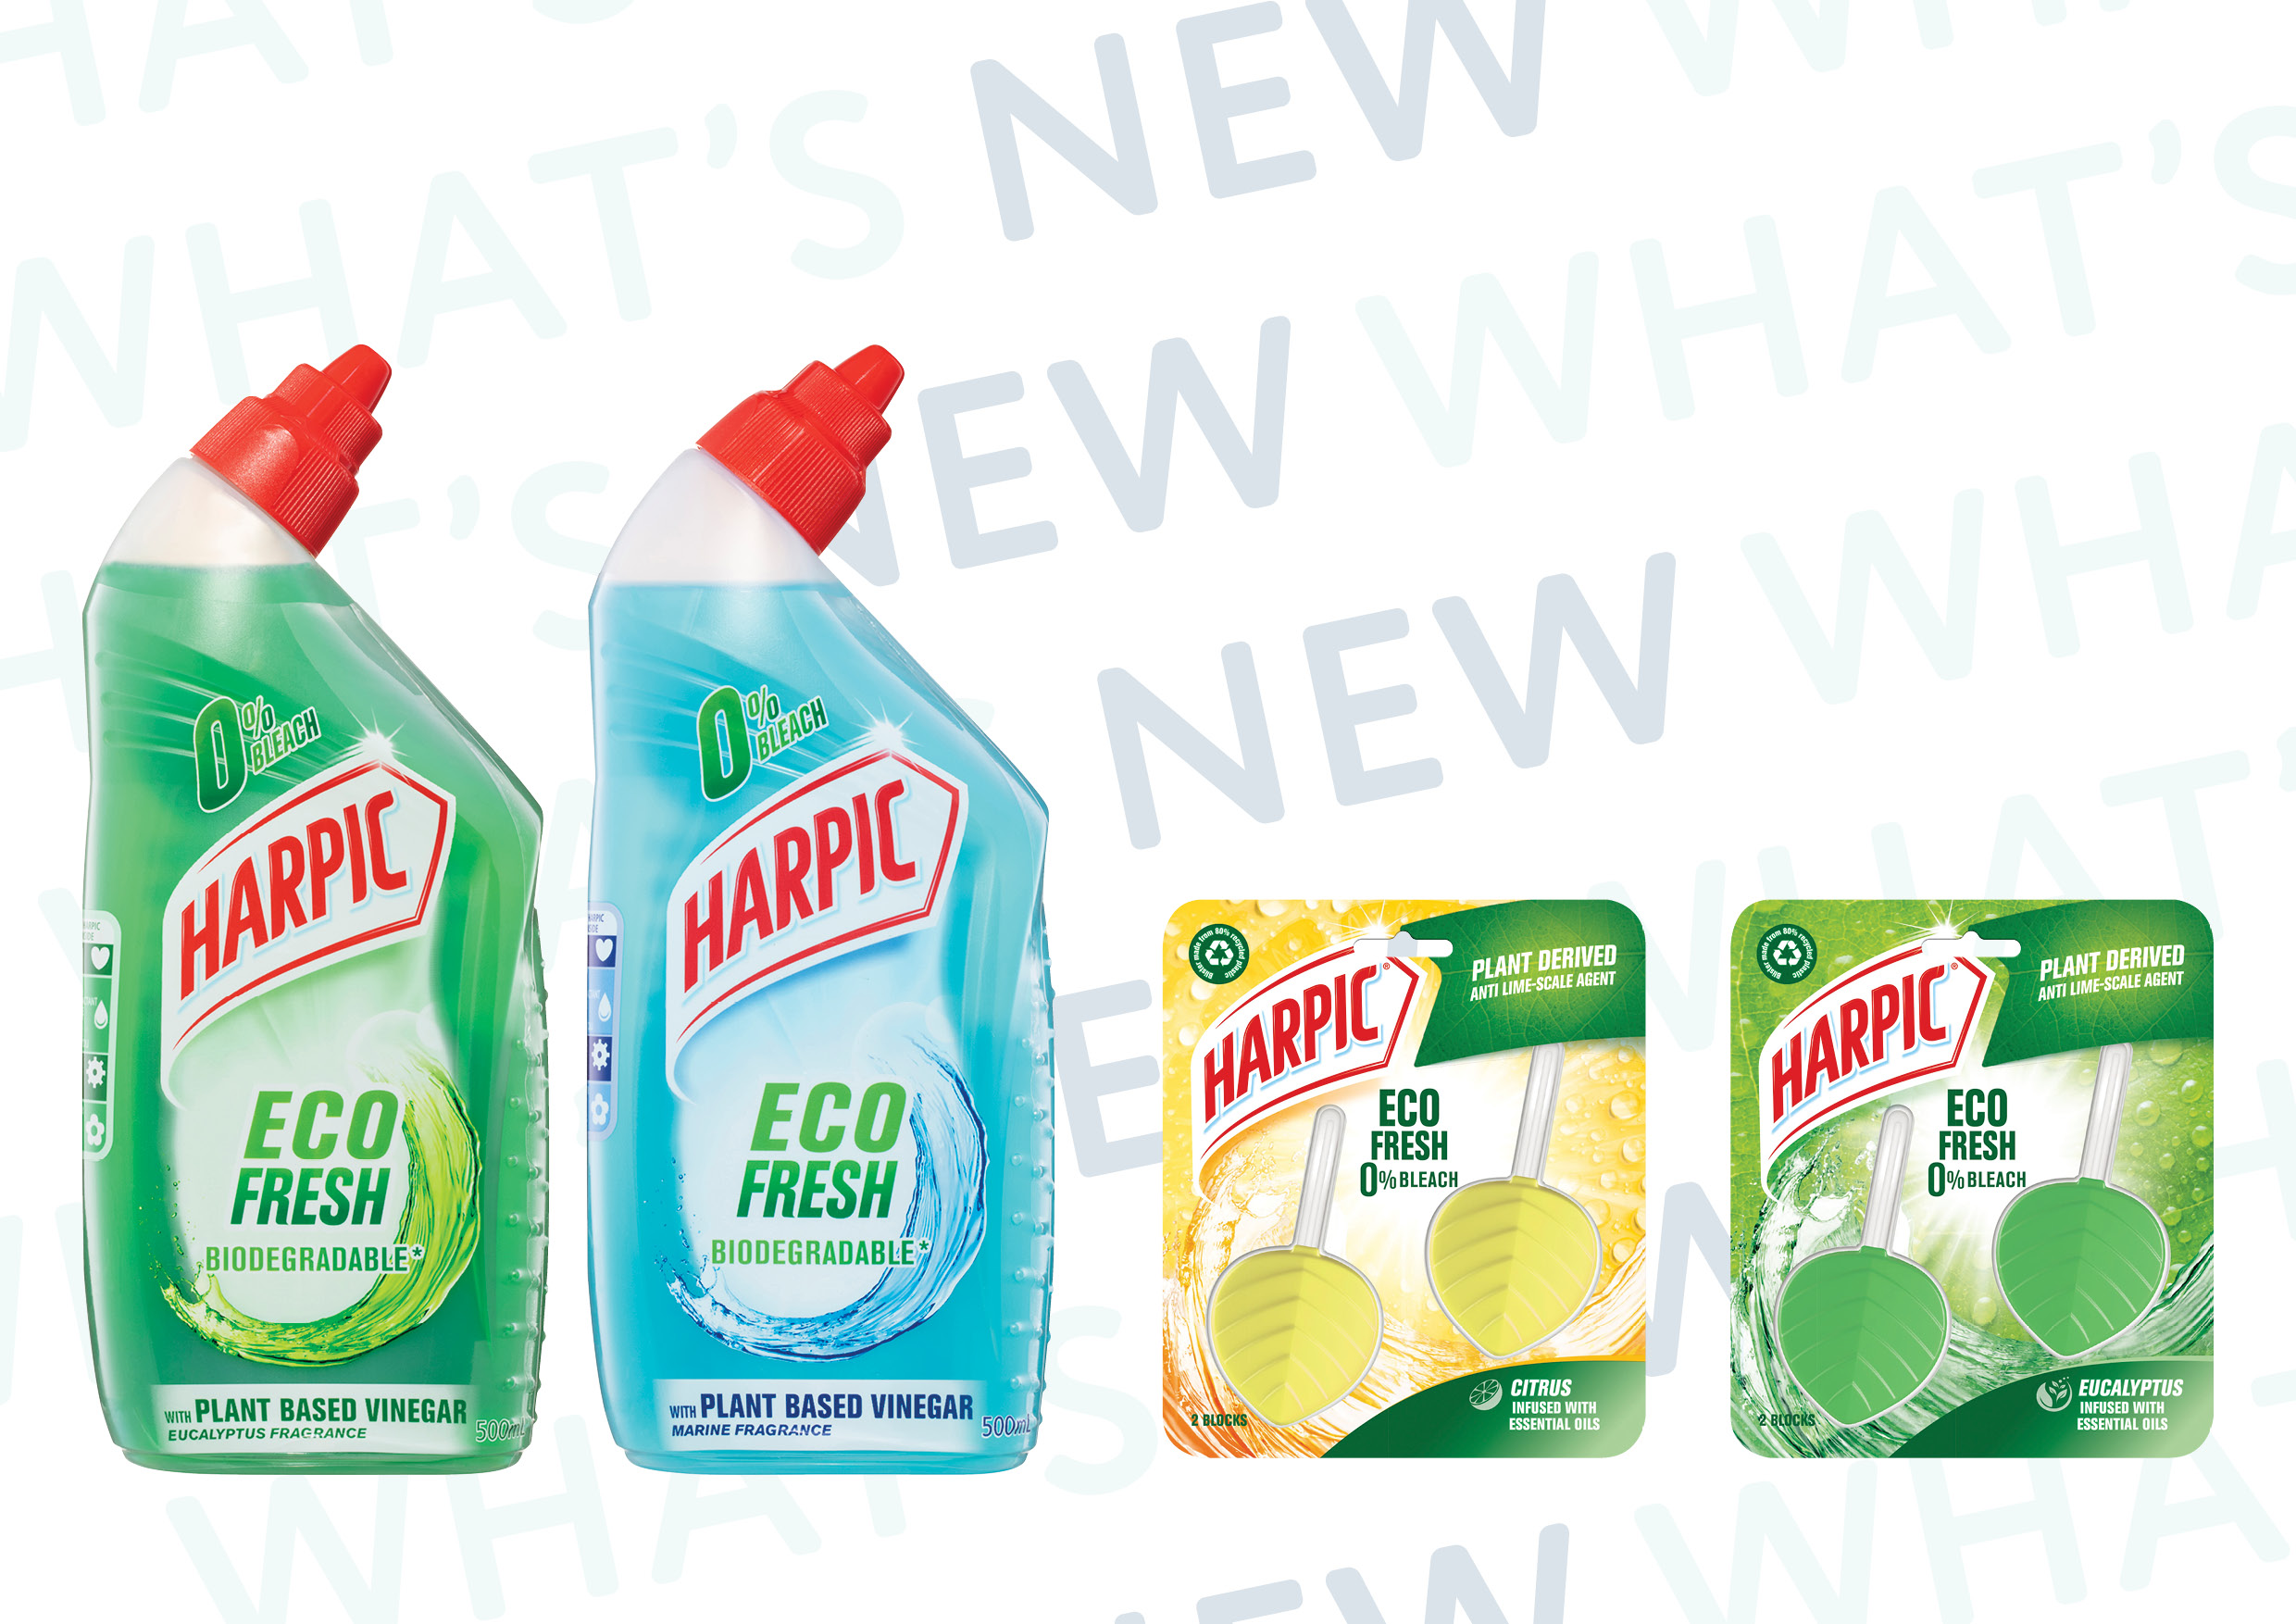 Harpic Launches Eco Fresh Range